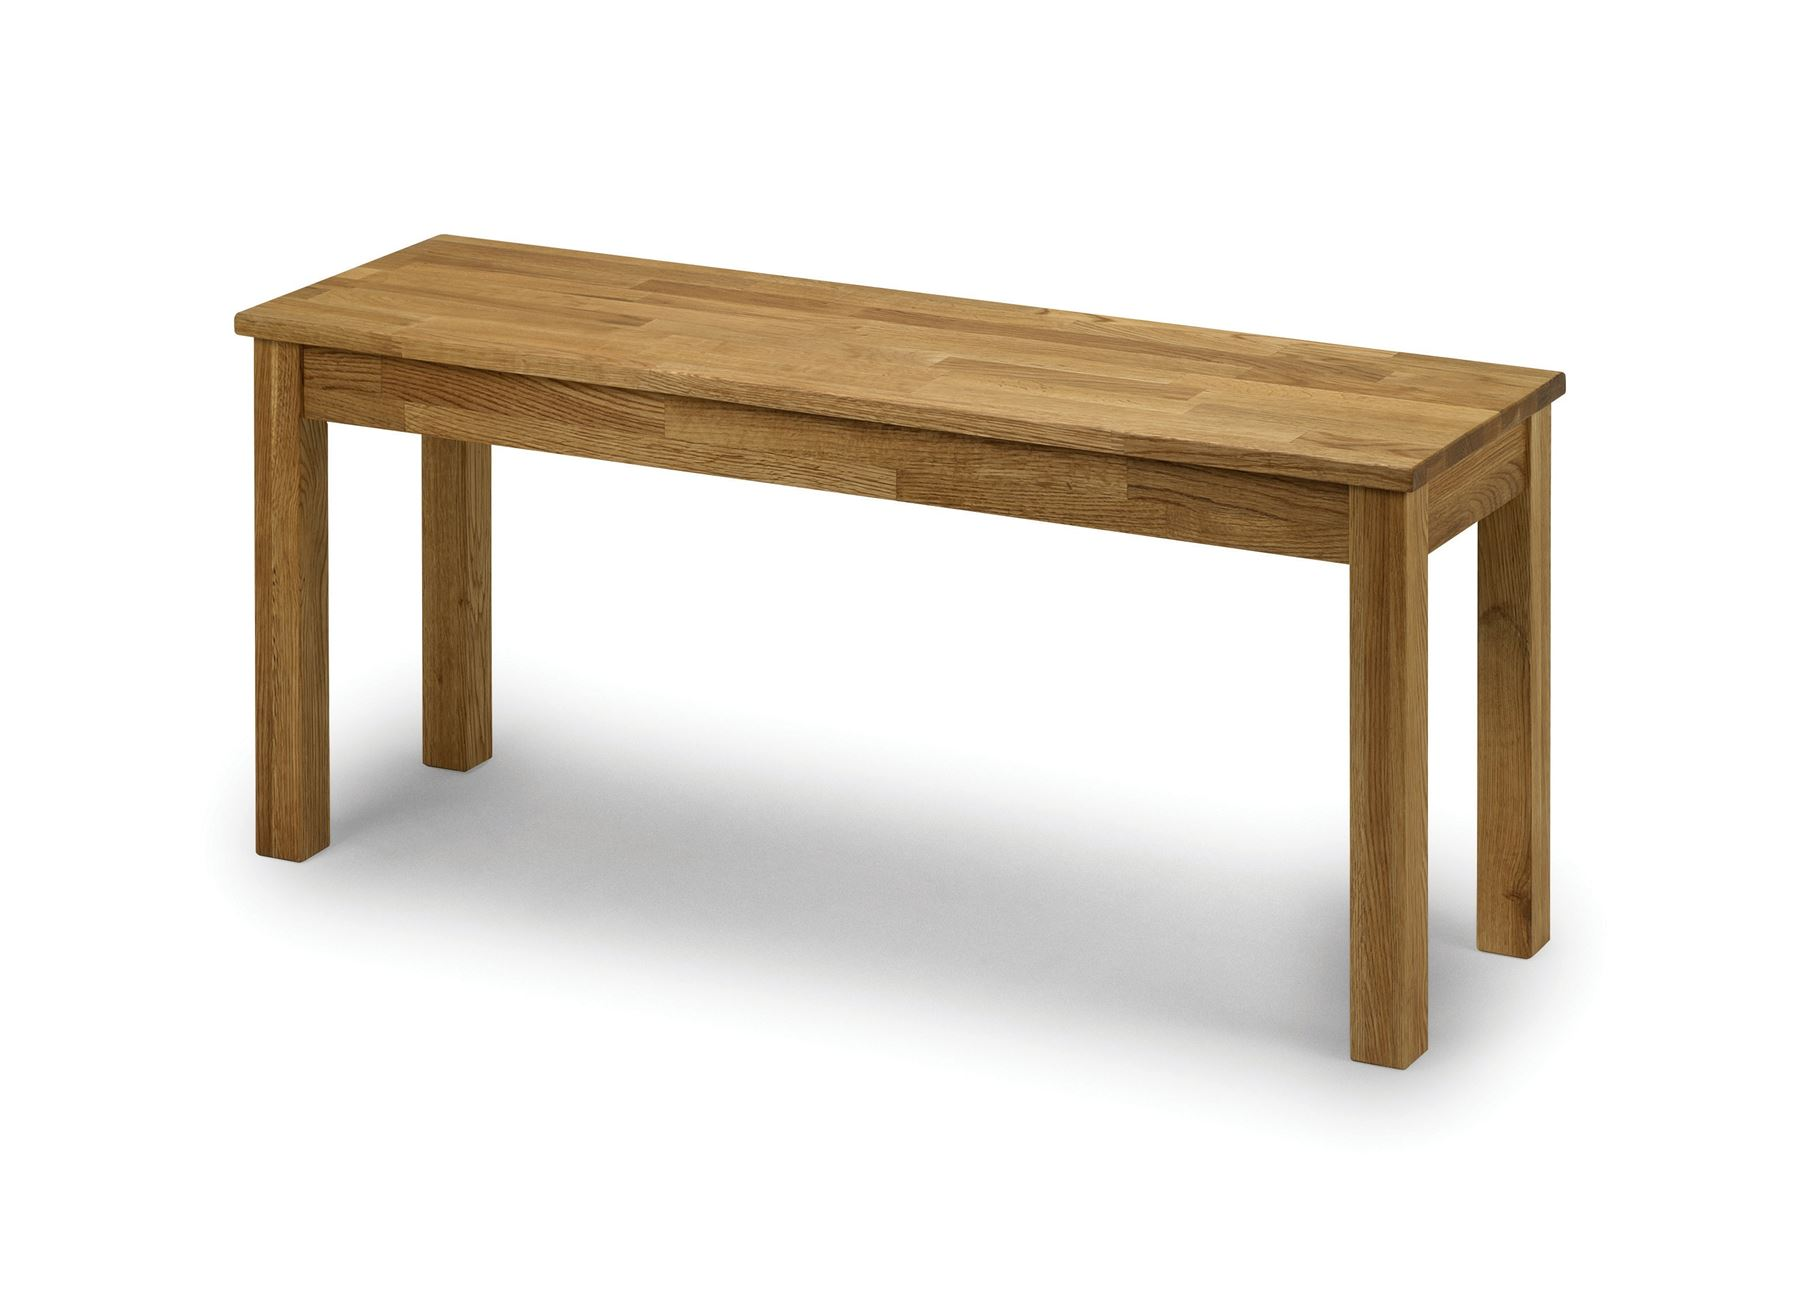 Julian Bowen Coxmoor Solid Wood American White Oiled Oak Dining Table Bench Only